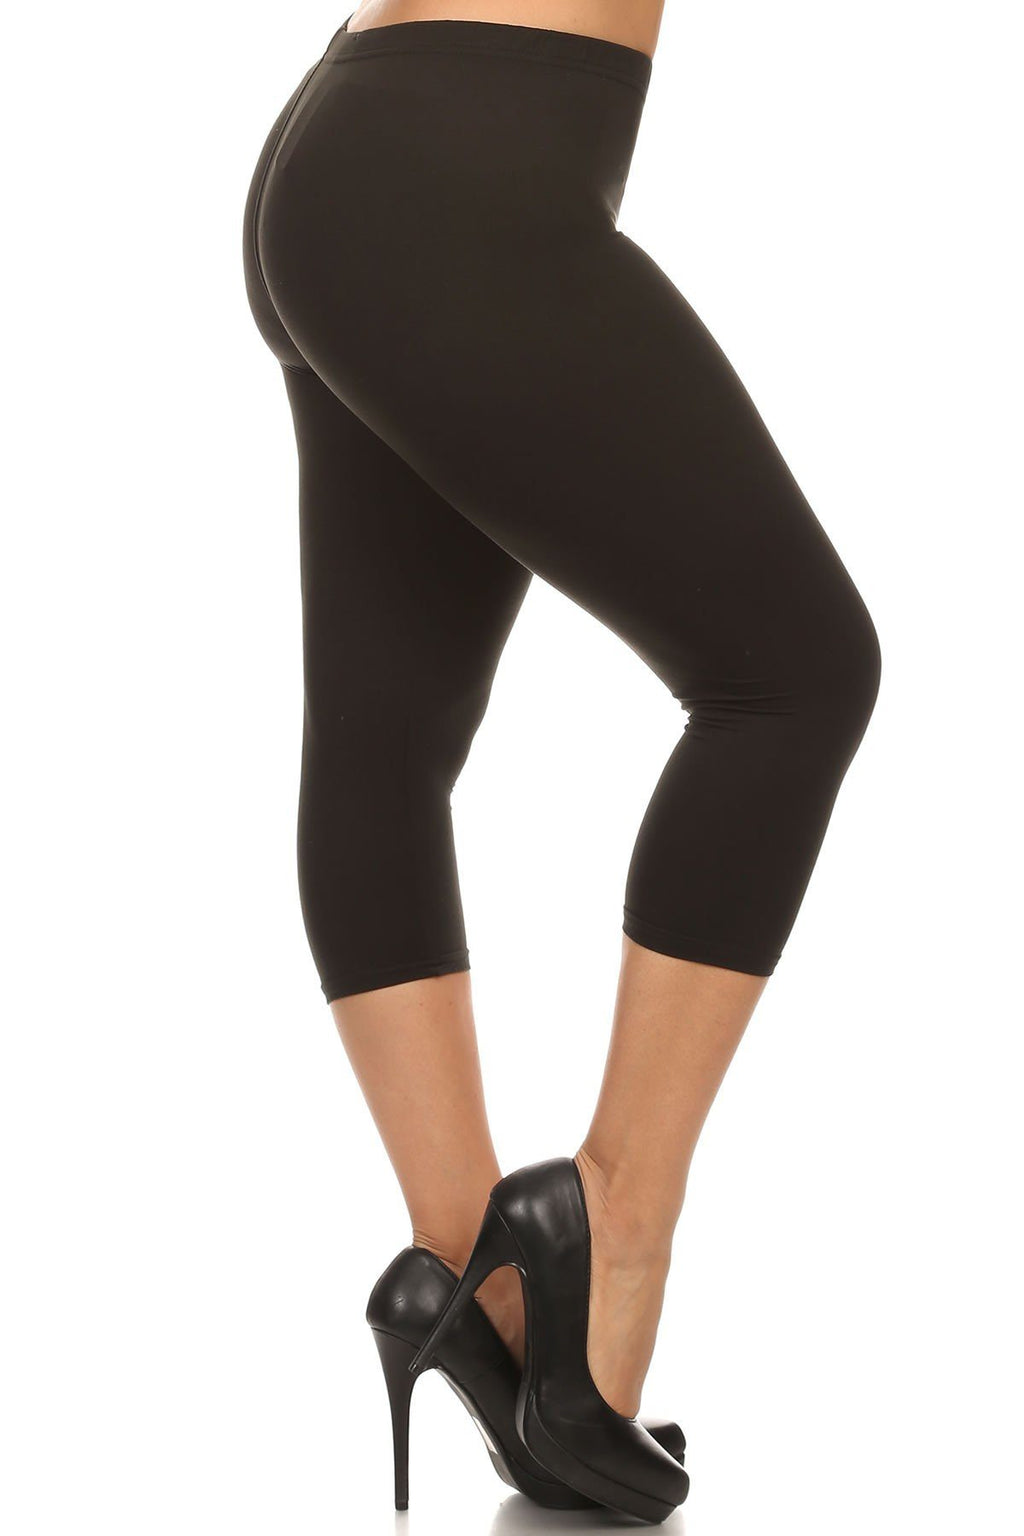 Capri Leggings for Women Solid Black: OS/PLUS